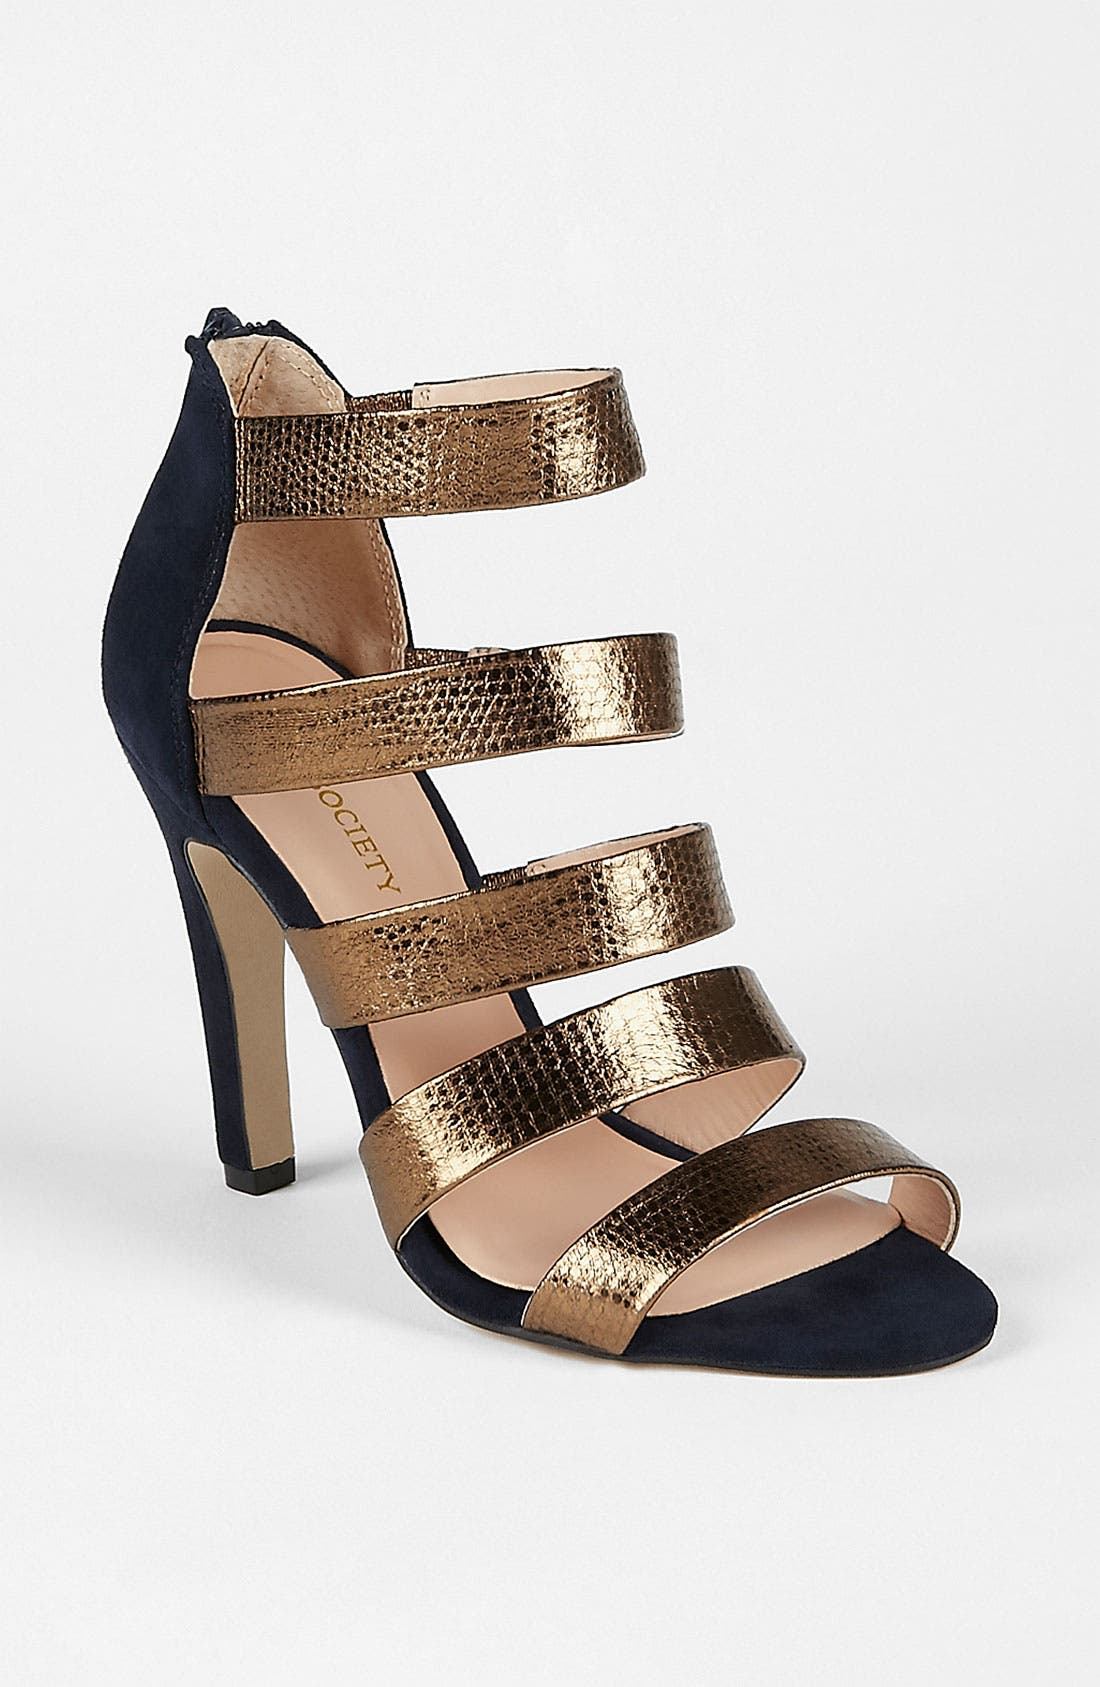 Alternate Image 1 Selected - Sole Society 'Suzanne' Sandal